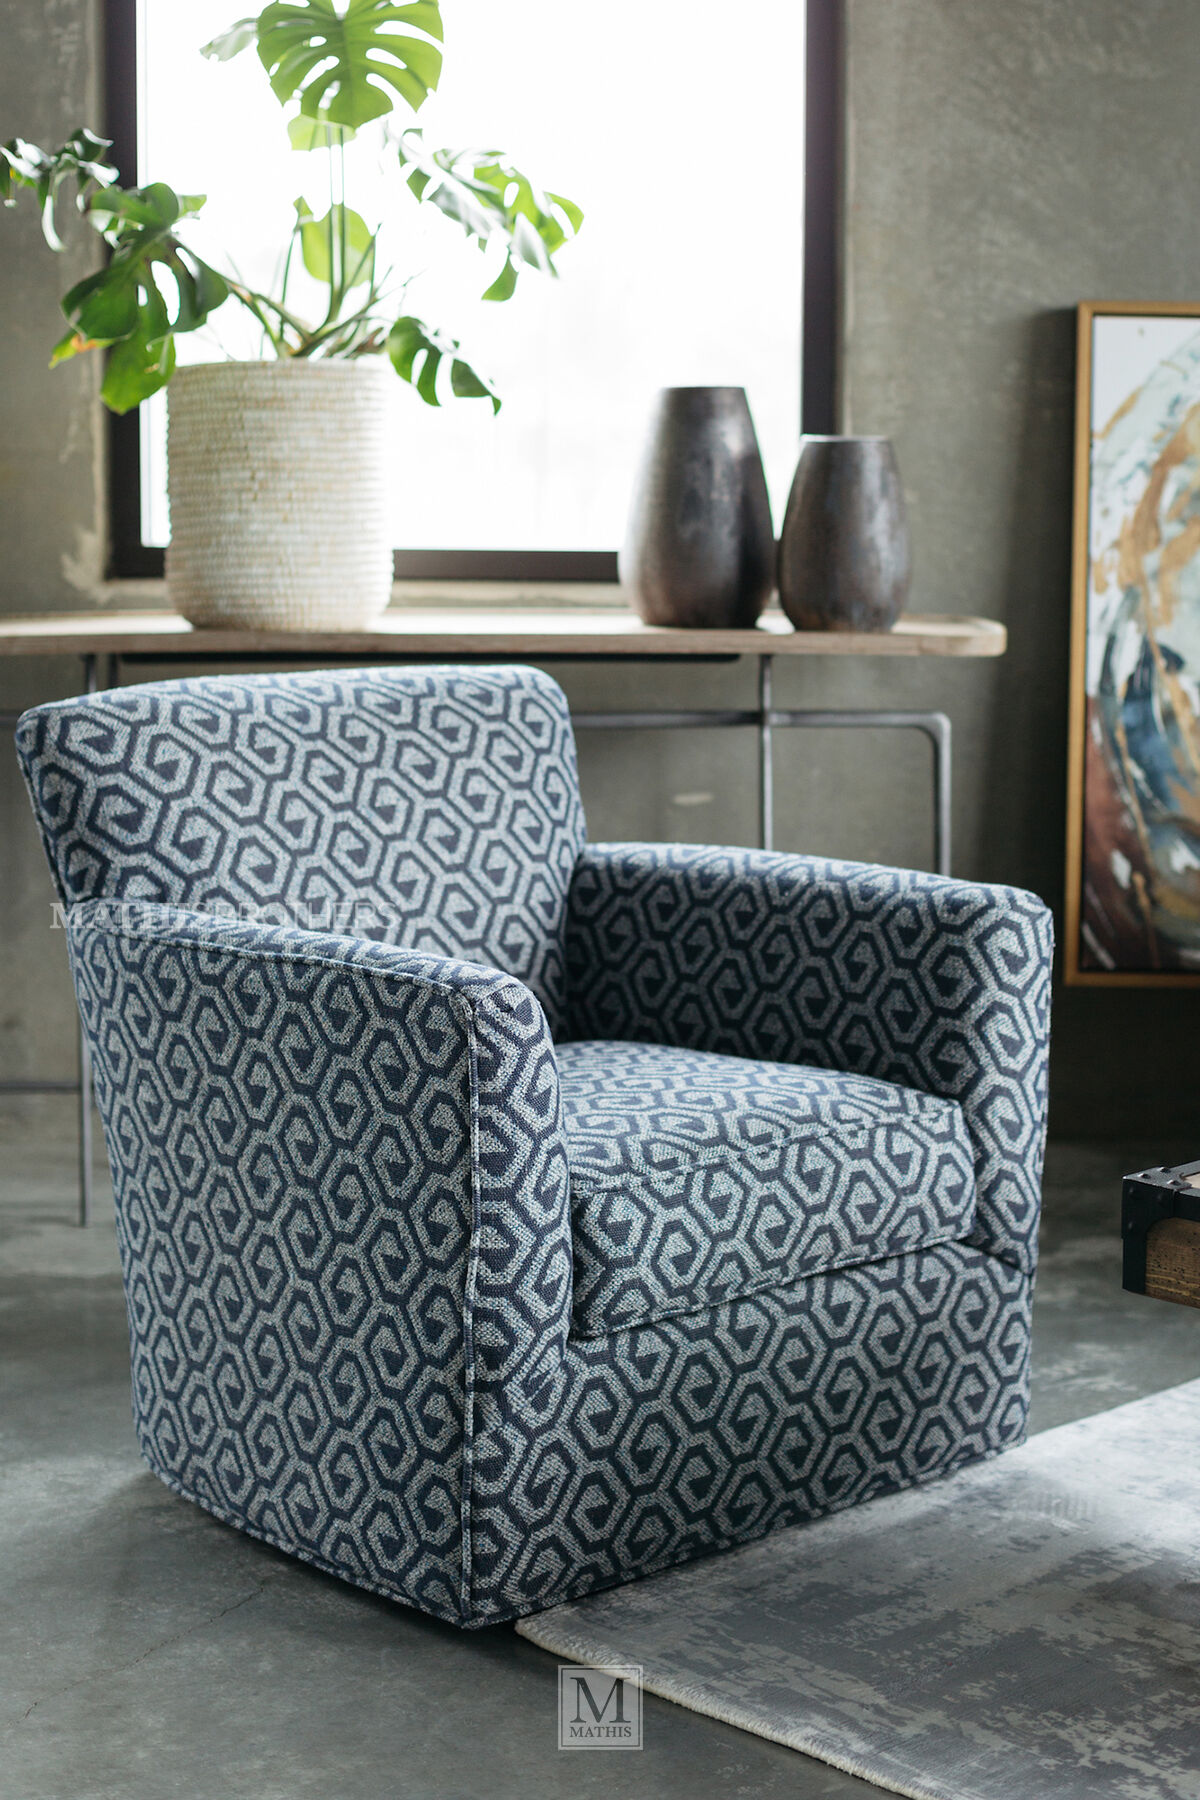 patterned living room chairs ladder back chair geometric contemporary 34 quot swivel in gray